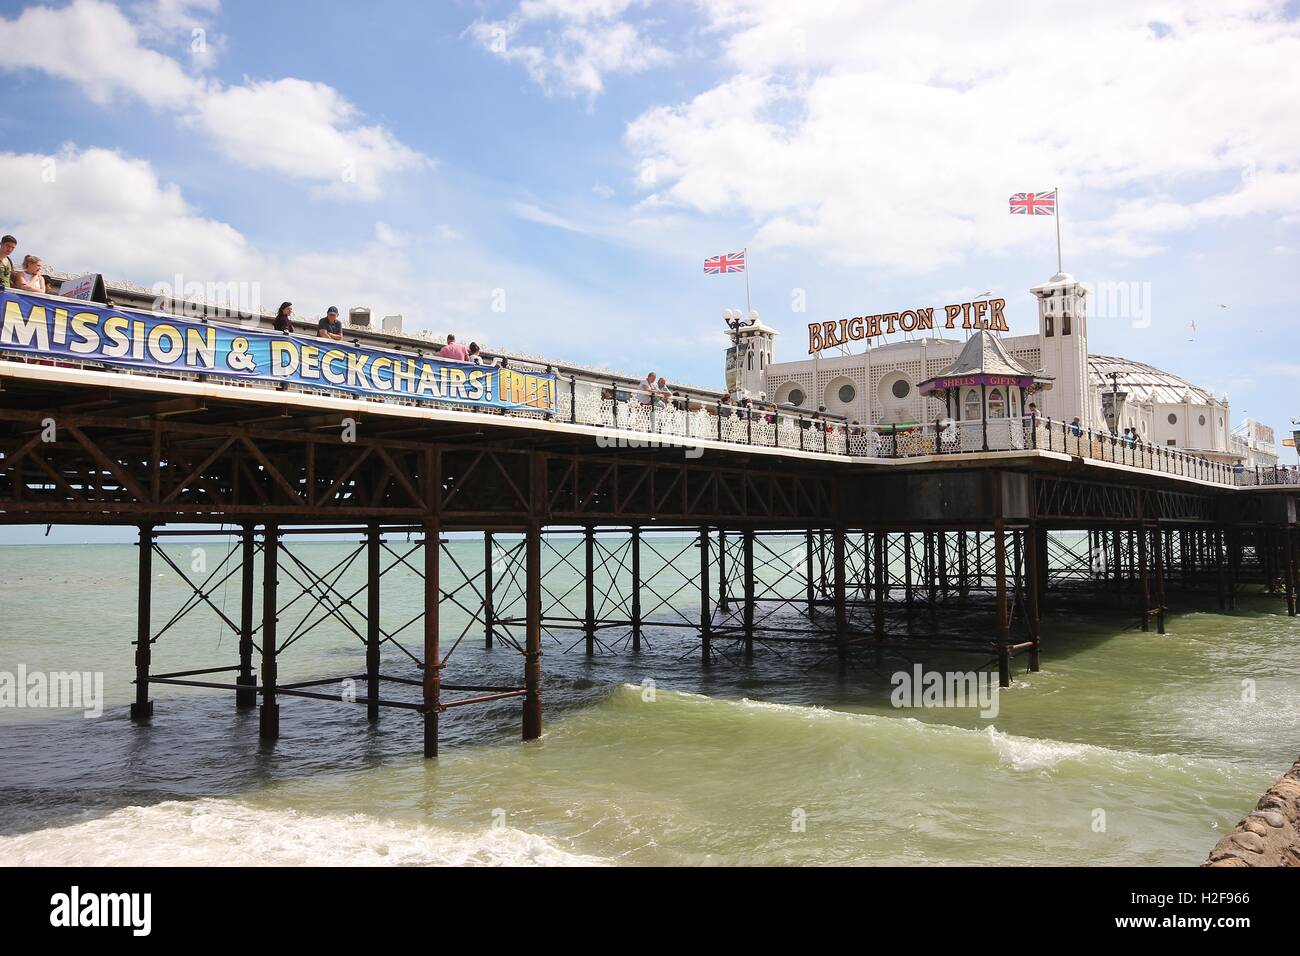 The Famous Brighton Pier shot from below on a beautiful sunny day, England, photoarkive - Stock Image